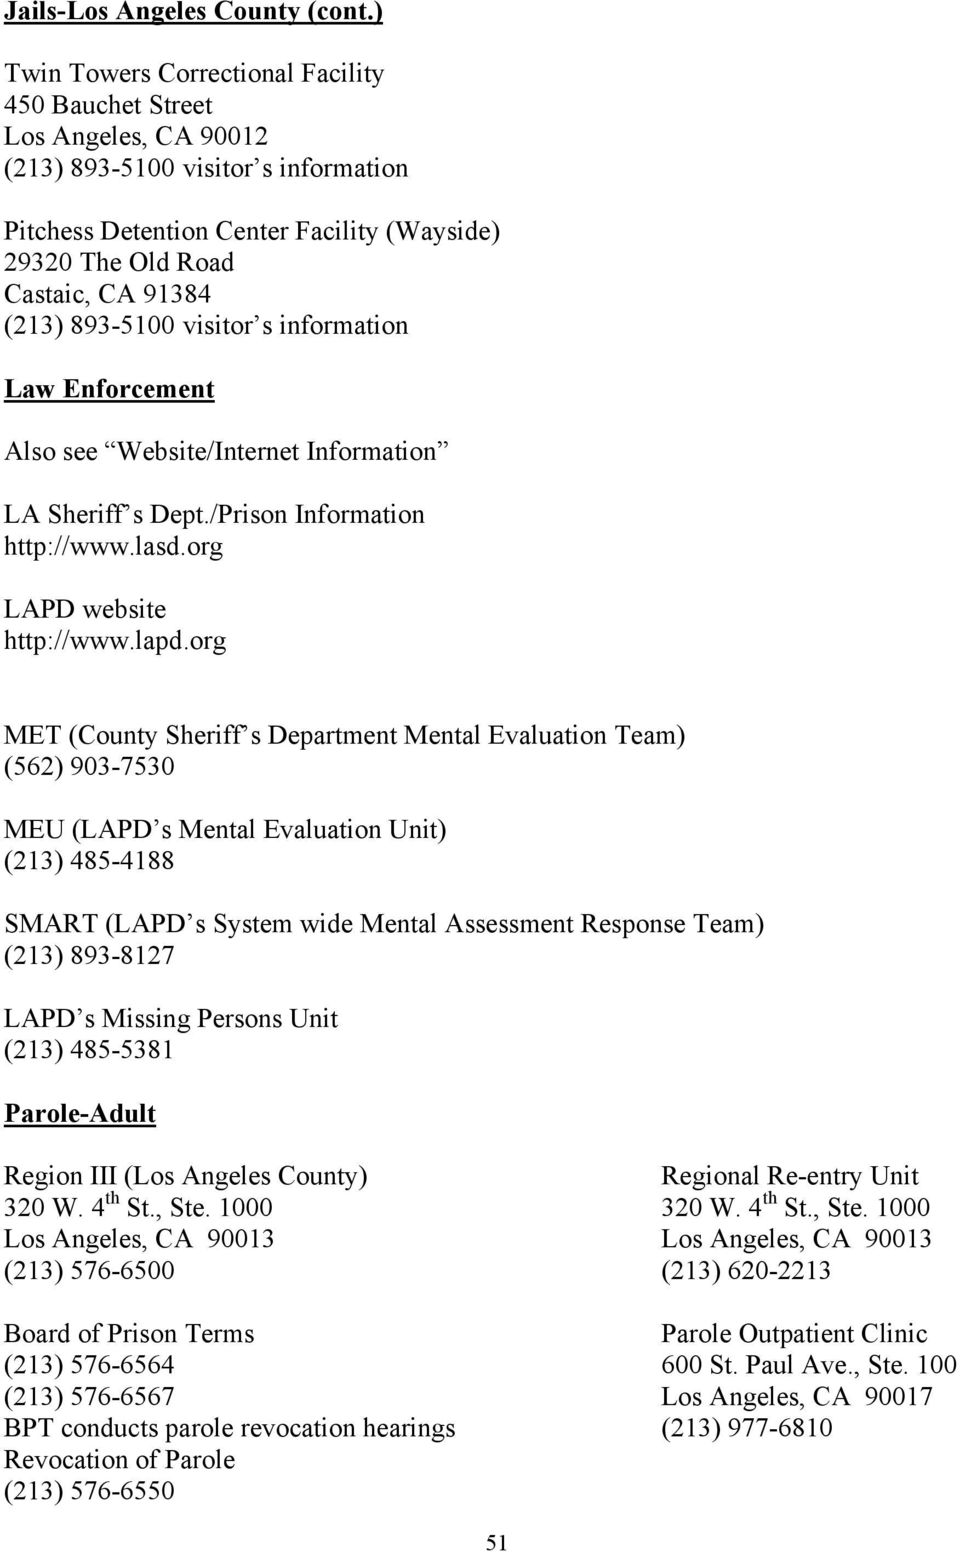 (213) 893-5100 visitor s information Law Enforcement Also see Website/Internet Information LA Sheriff s Dept./Prison Information http://www.lasd.org LAPD website http://www.lapd.